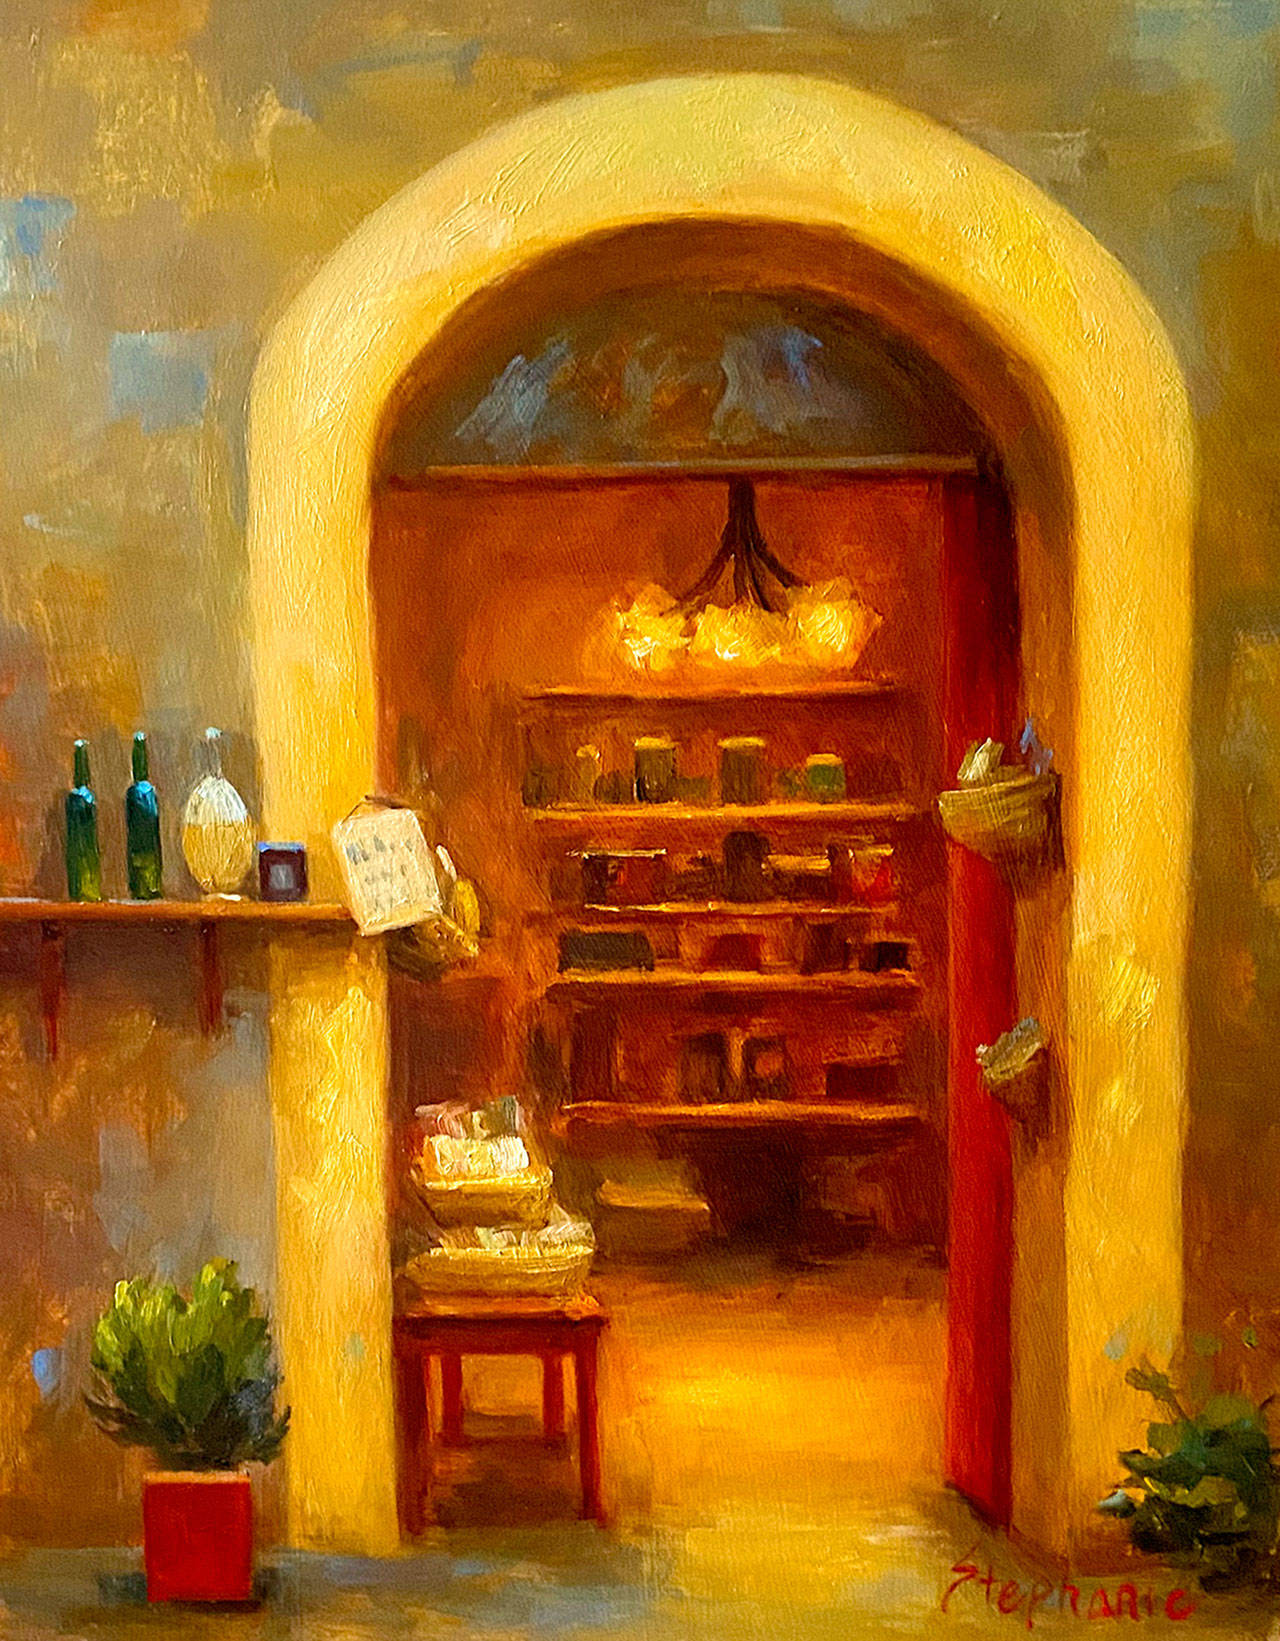 ??  Olive oil store in Pienza ??  is one of the works of art by Stephanie K. Johnson on display at the Port Townsend Gallery this month.